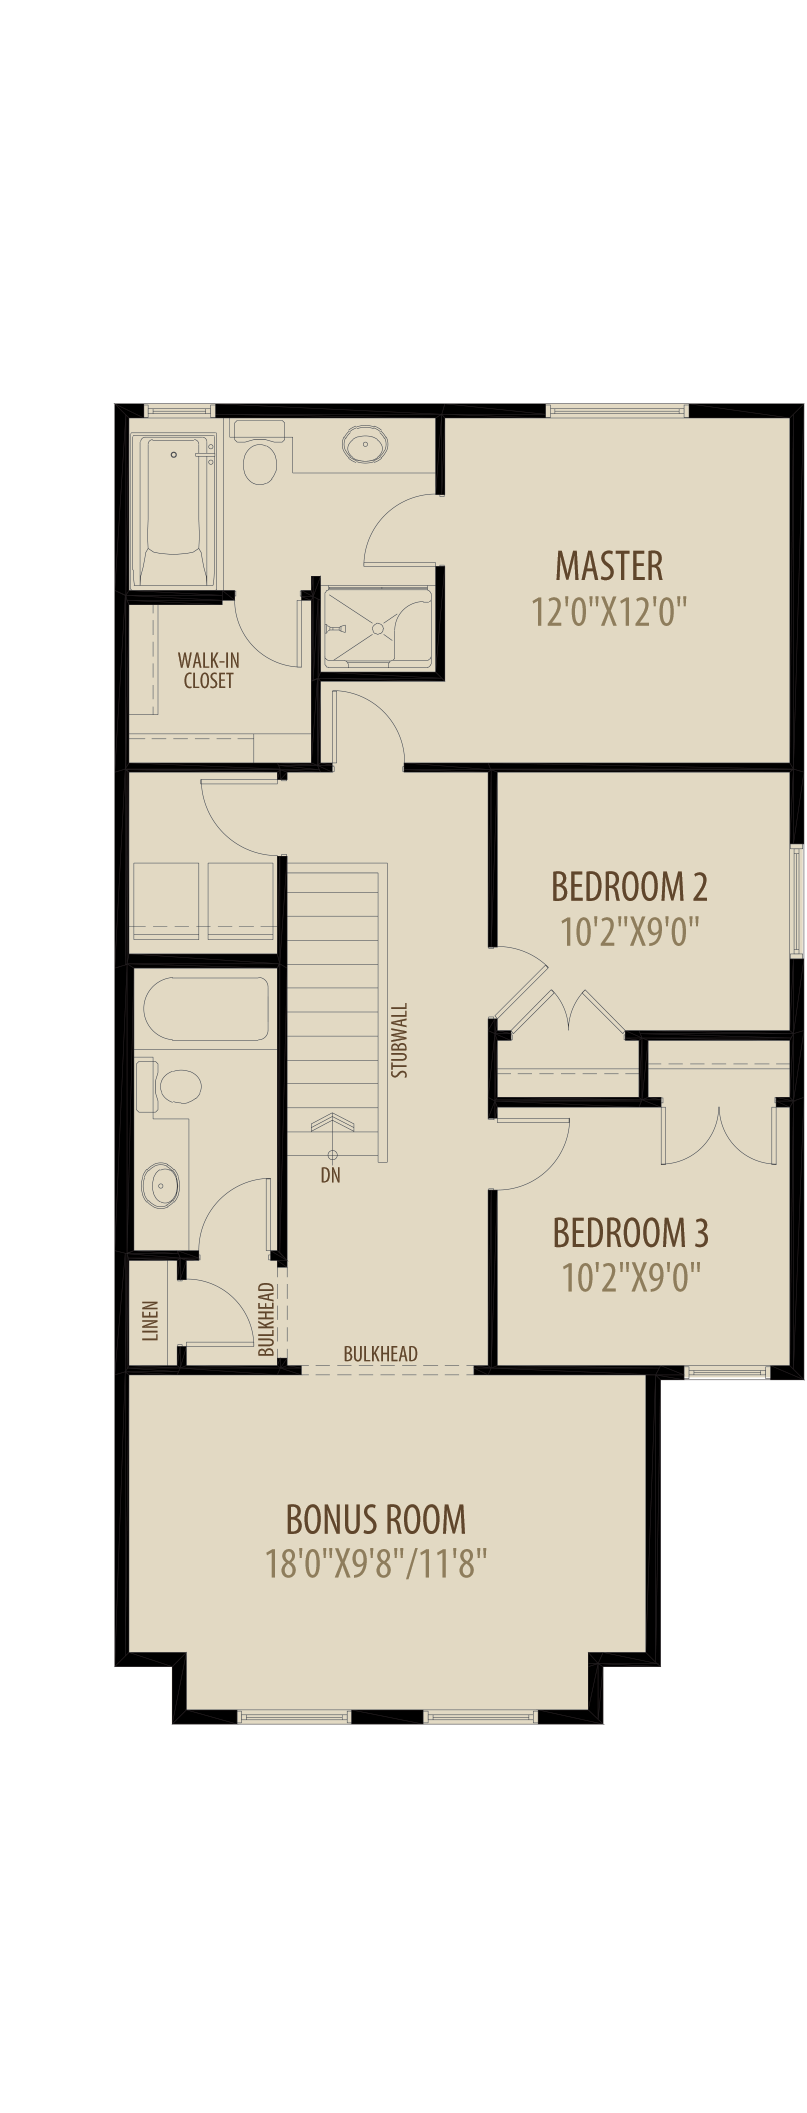 Revised Upper Floor Adds 58Sq Ft